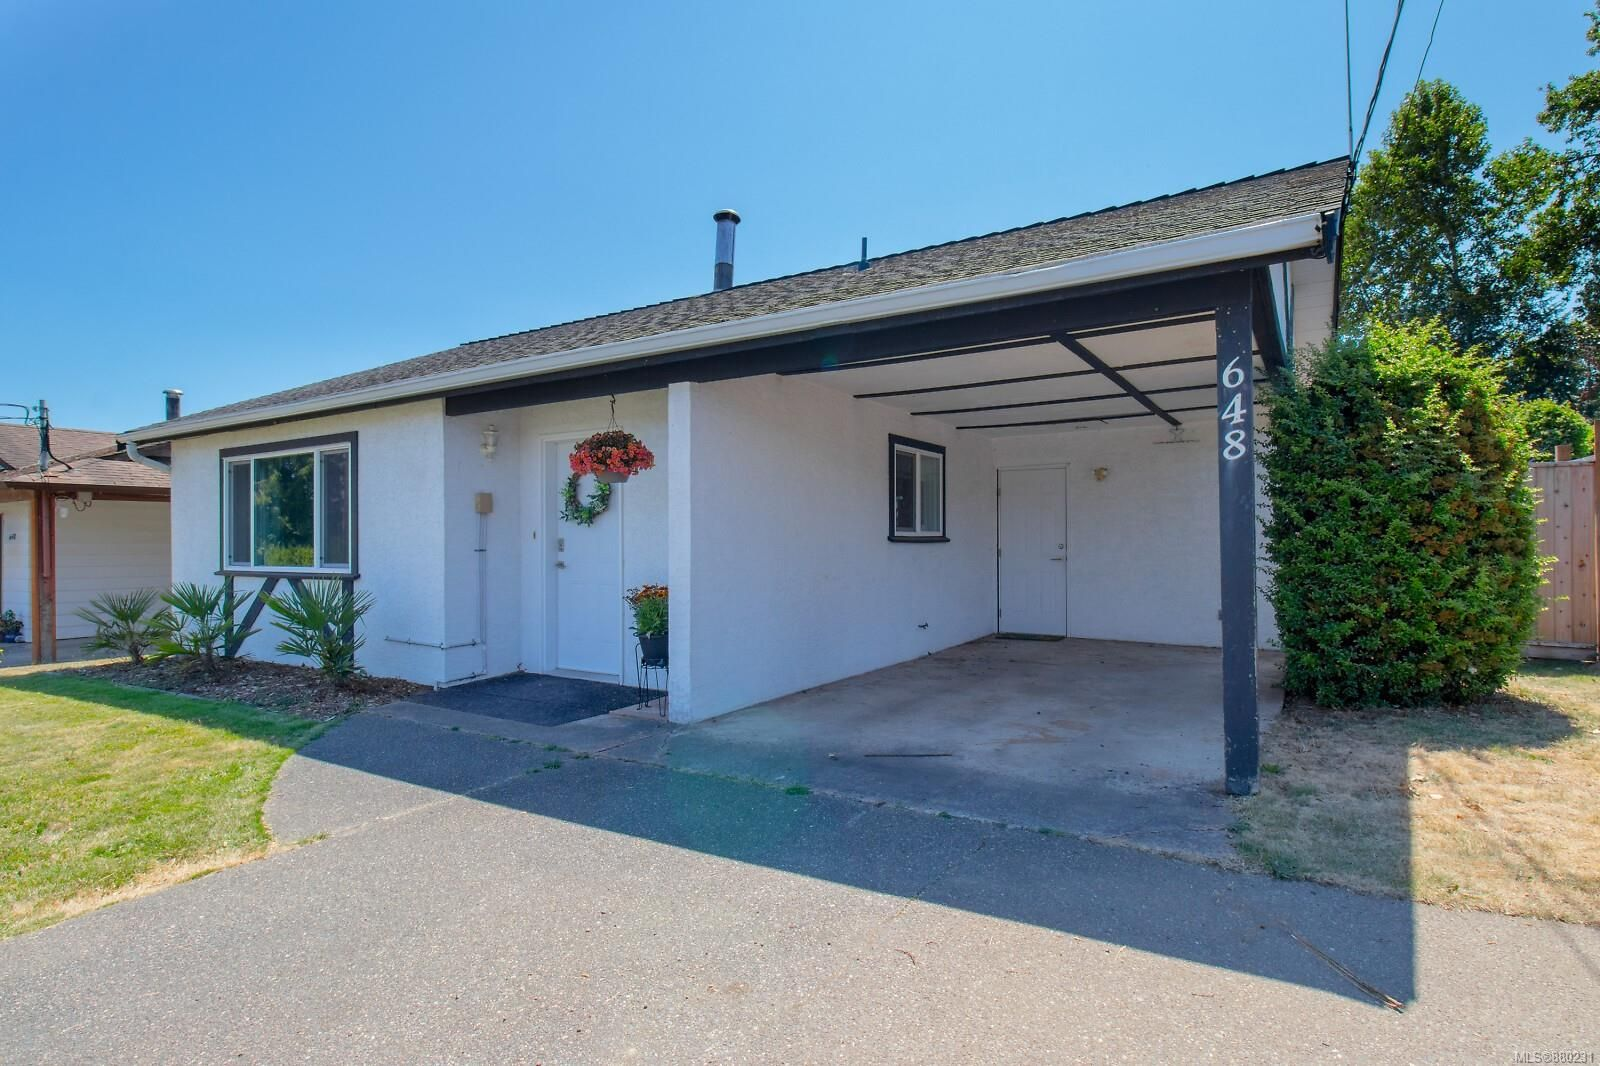 Main Photo: 648 Blenkin Ave in : PQ Parksville House for sale (Parksville/Qualicum)  : MLS®# 880231